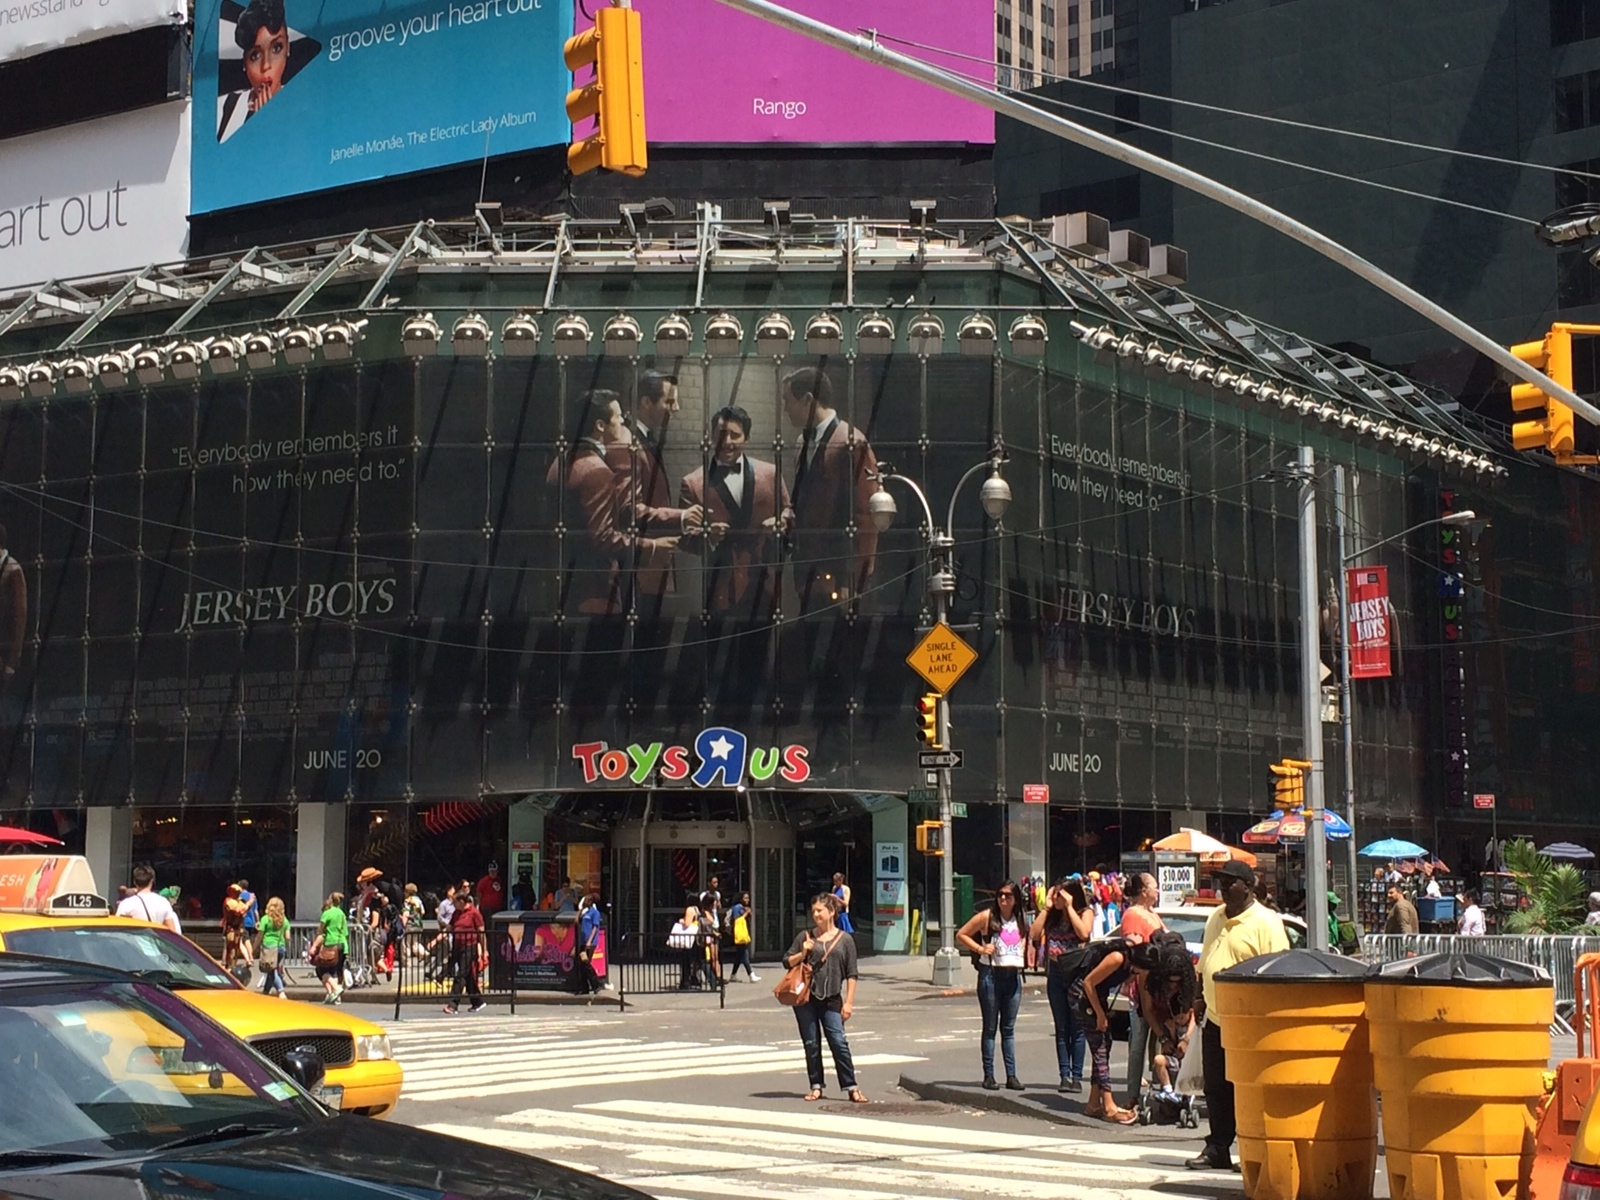 Jersey Boys  film in Time Square, New York